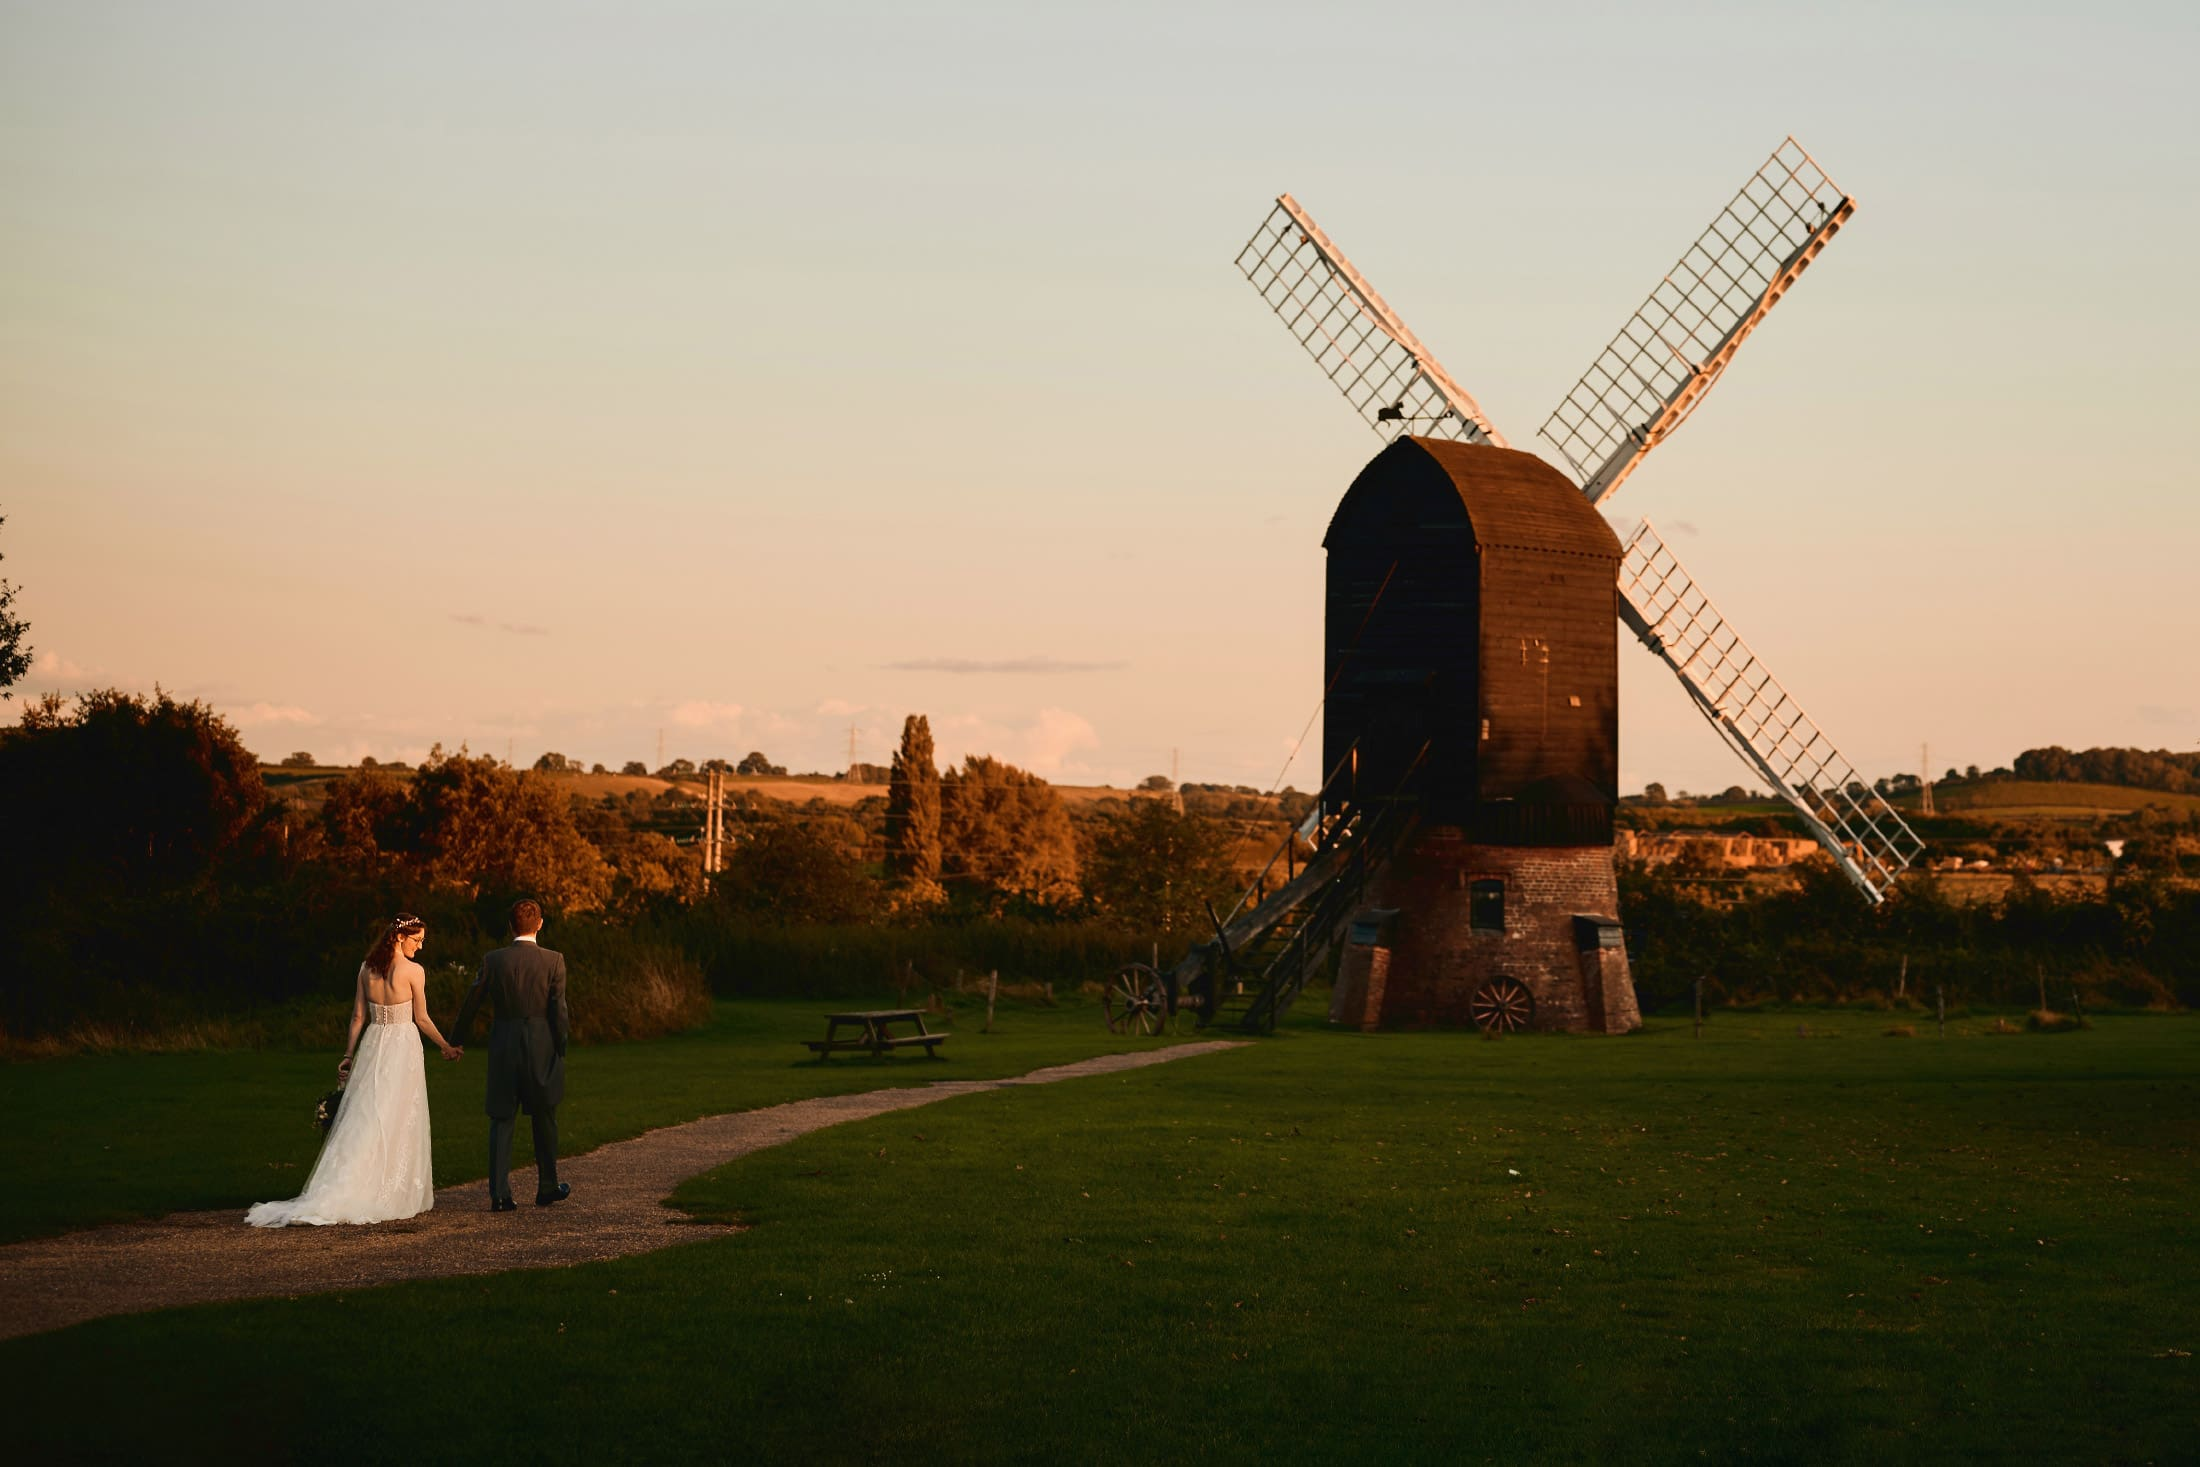 Bride and groom walk hand in hand towards old windmill in beautiful evening light